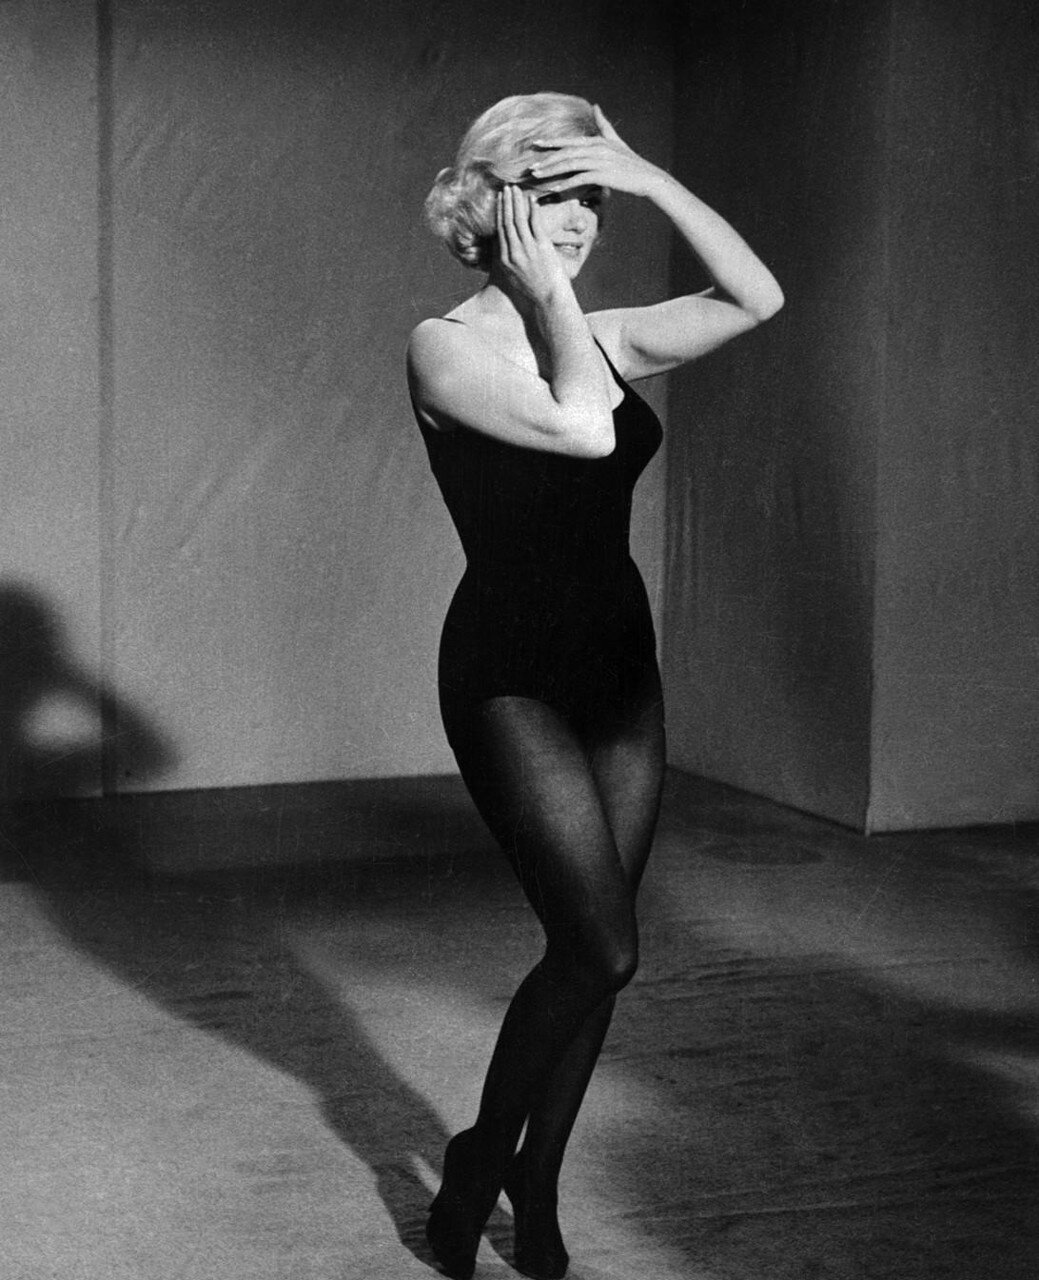 Marilyn Monroe Posing with Hands to Her Face